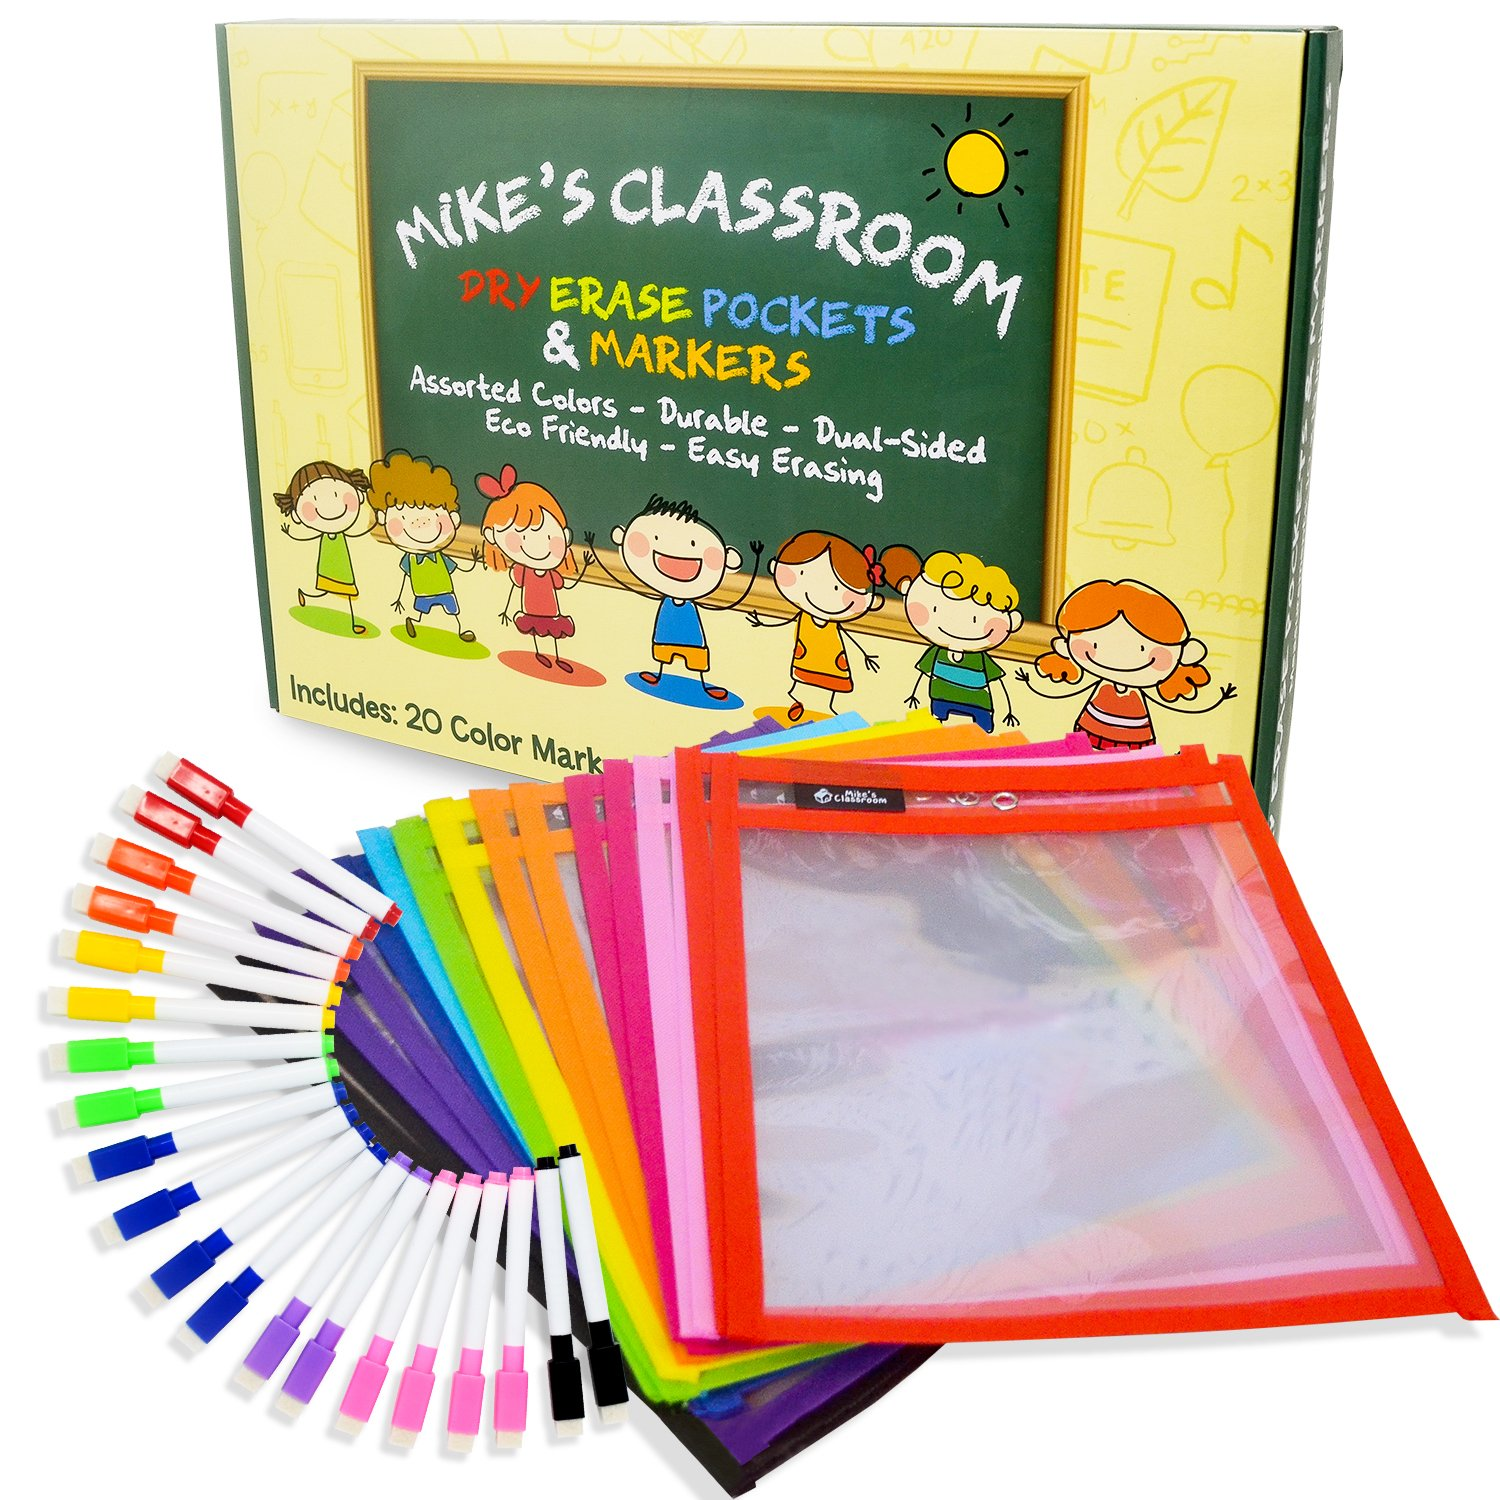 Mike's Classroom Dry Erase Pockets | 20pcs | 10'' x 13'' | Multi-Color Wipe-Away Marker Tools w/Eraser Tips | Binder Ring! | Reusable Eco-Friendly Teaching Supplies for School & Teacher Organization